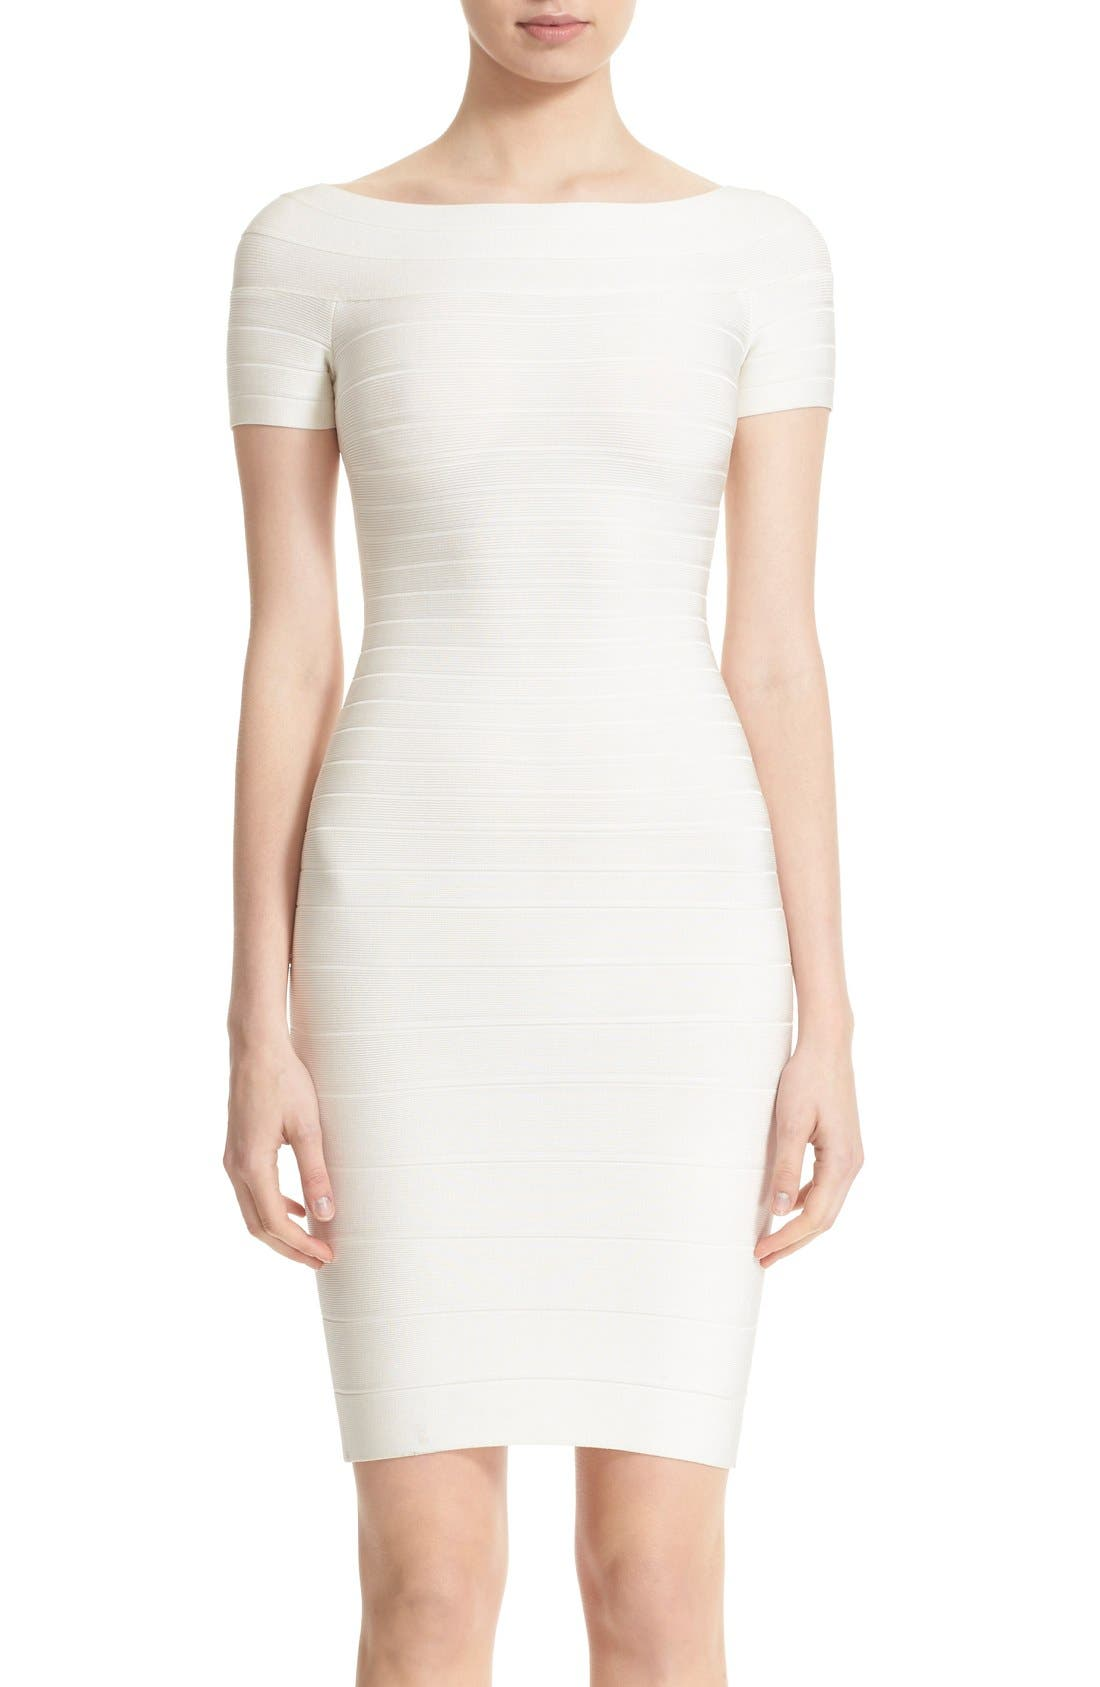 Alternate Image 1 Selected - Herve Leger 'Carmen' Off the Shoulder Bandage Dress